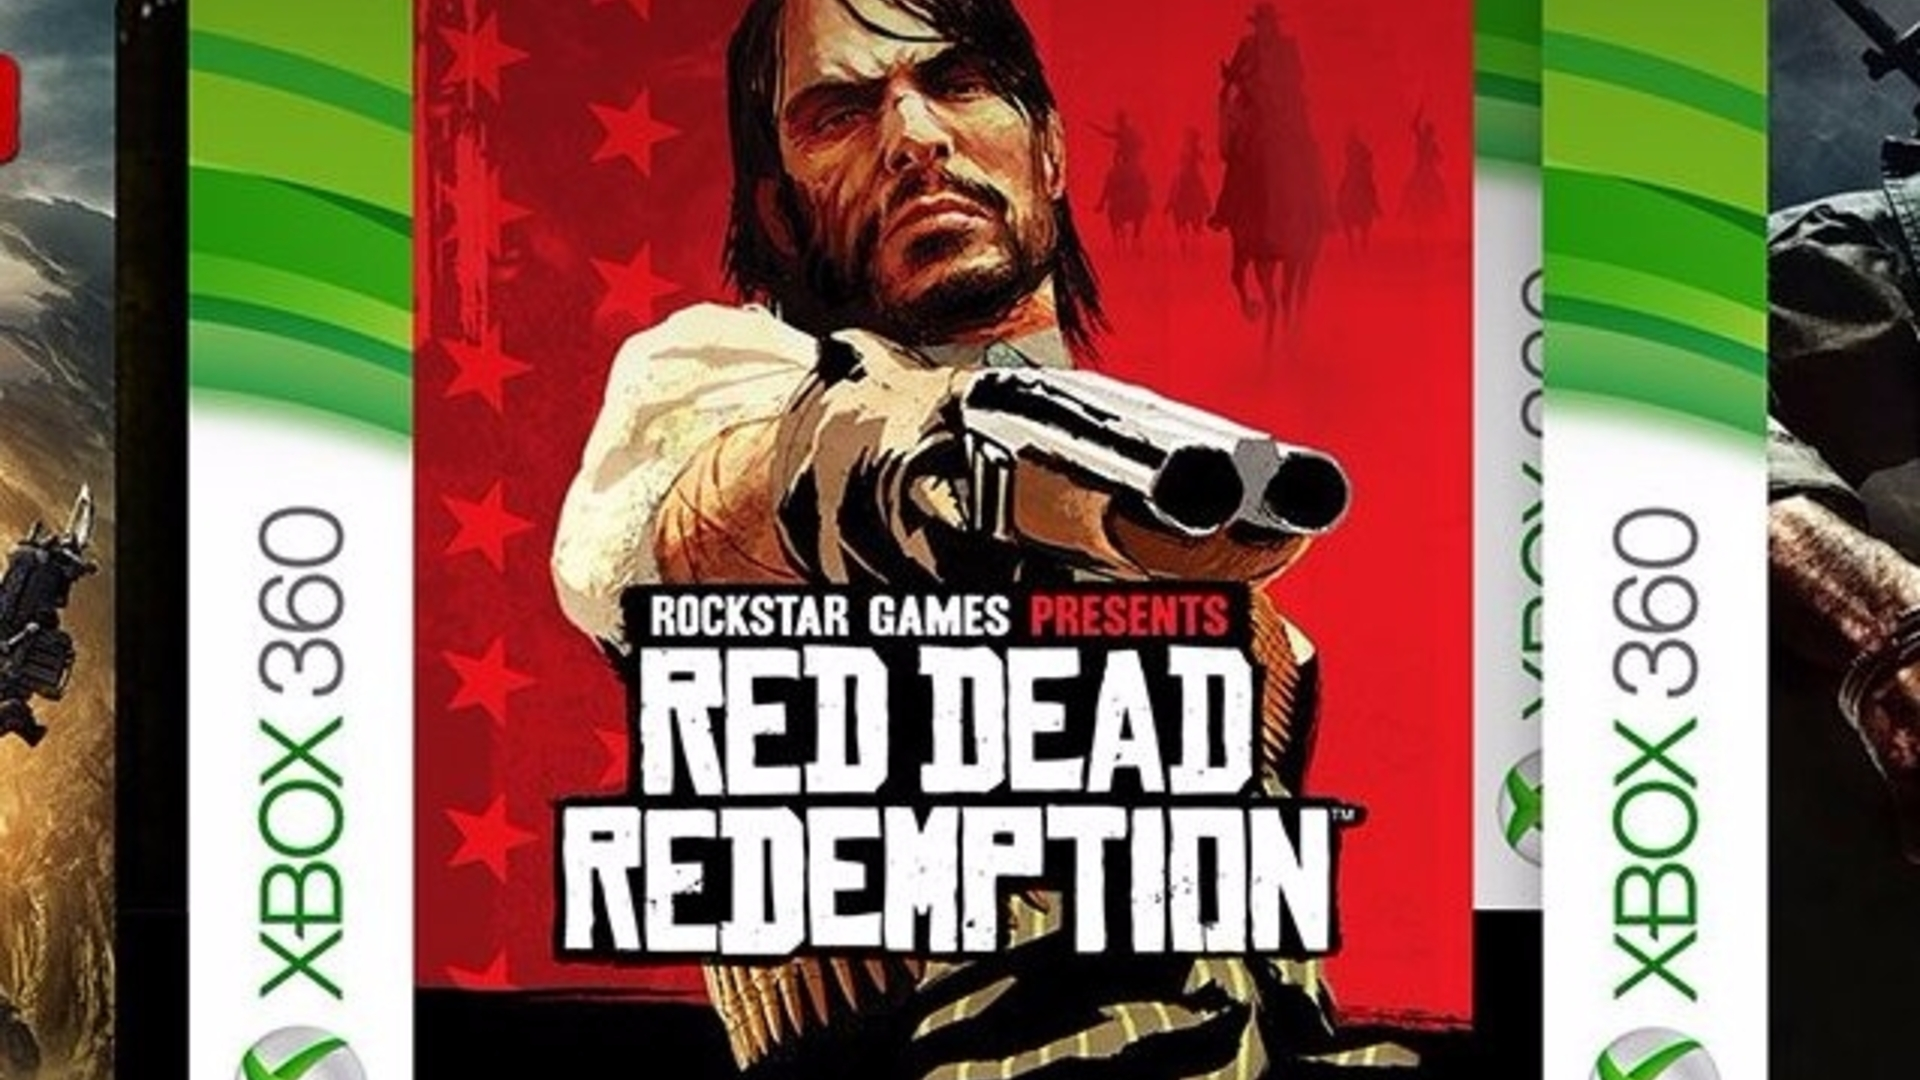 xbox one backwards compatibility list: what xbox 360 games are